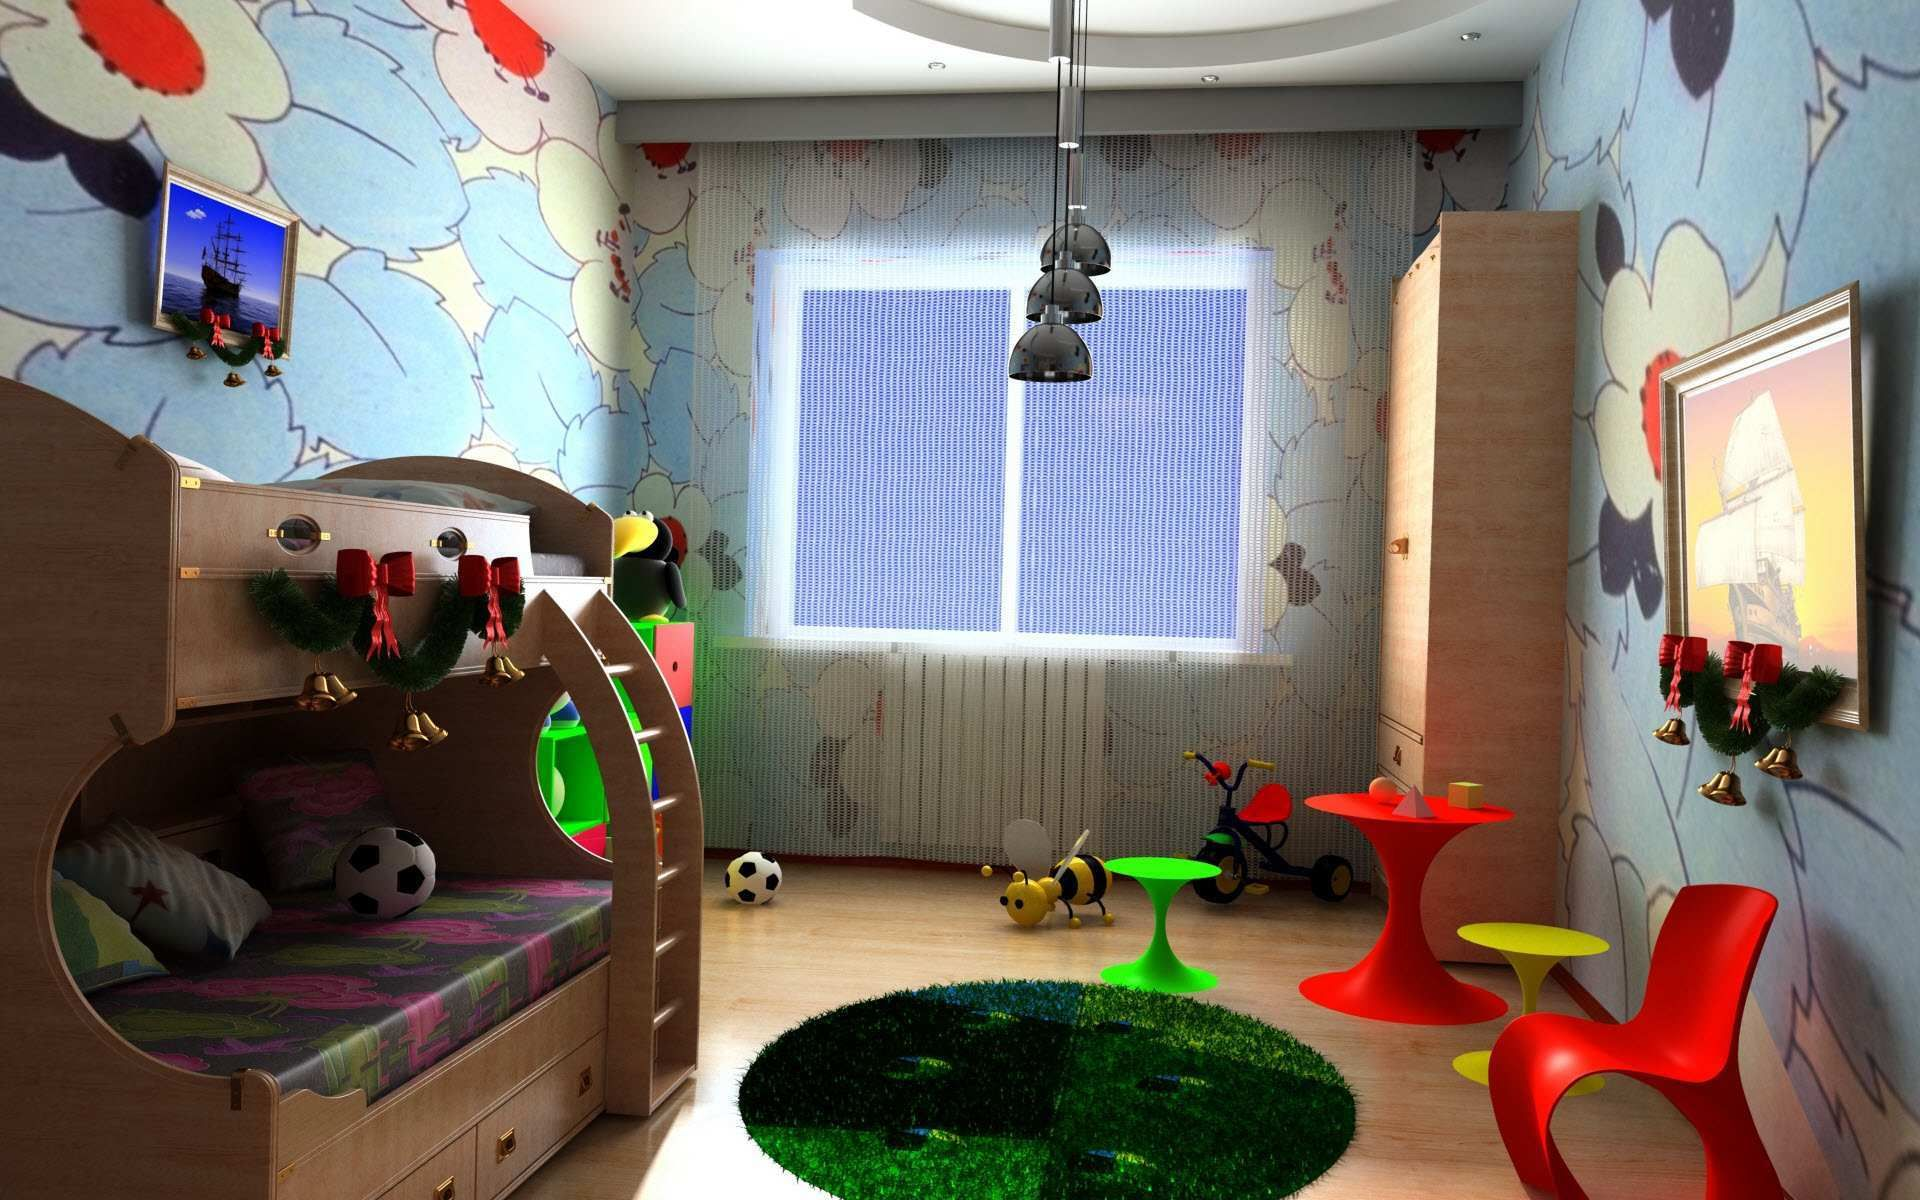 25 Marvelous Kids Rooms Ceiling Designs Ideas Raising Your Kids Properly Is The Most Essential Part Of Kids Room Design Boy Bedroom Design Kid Room Decor